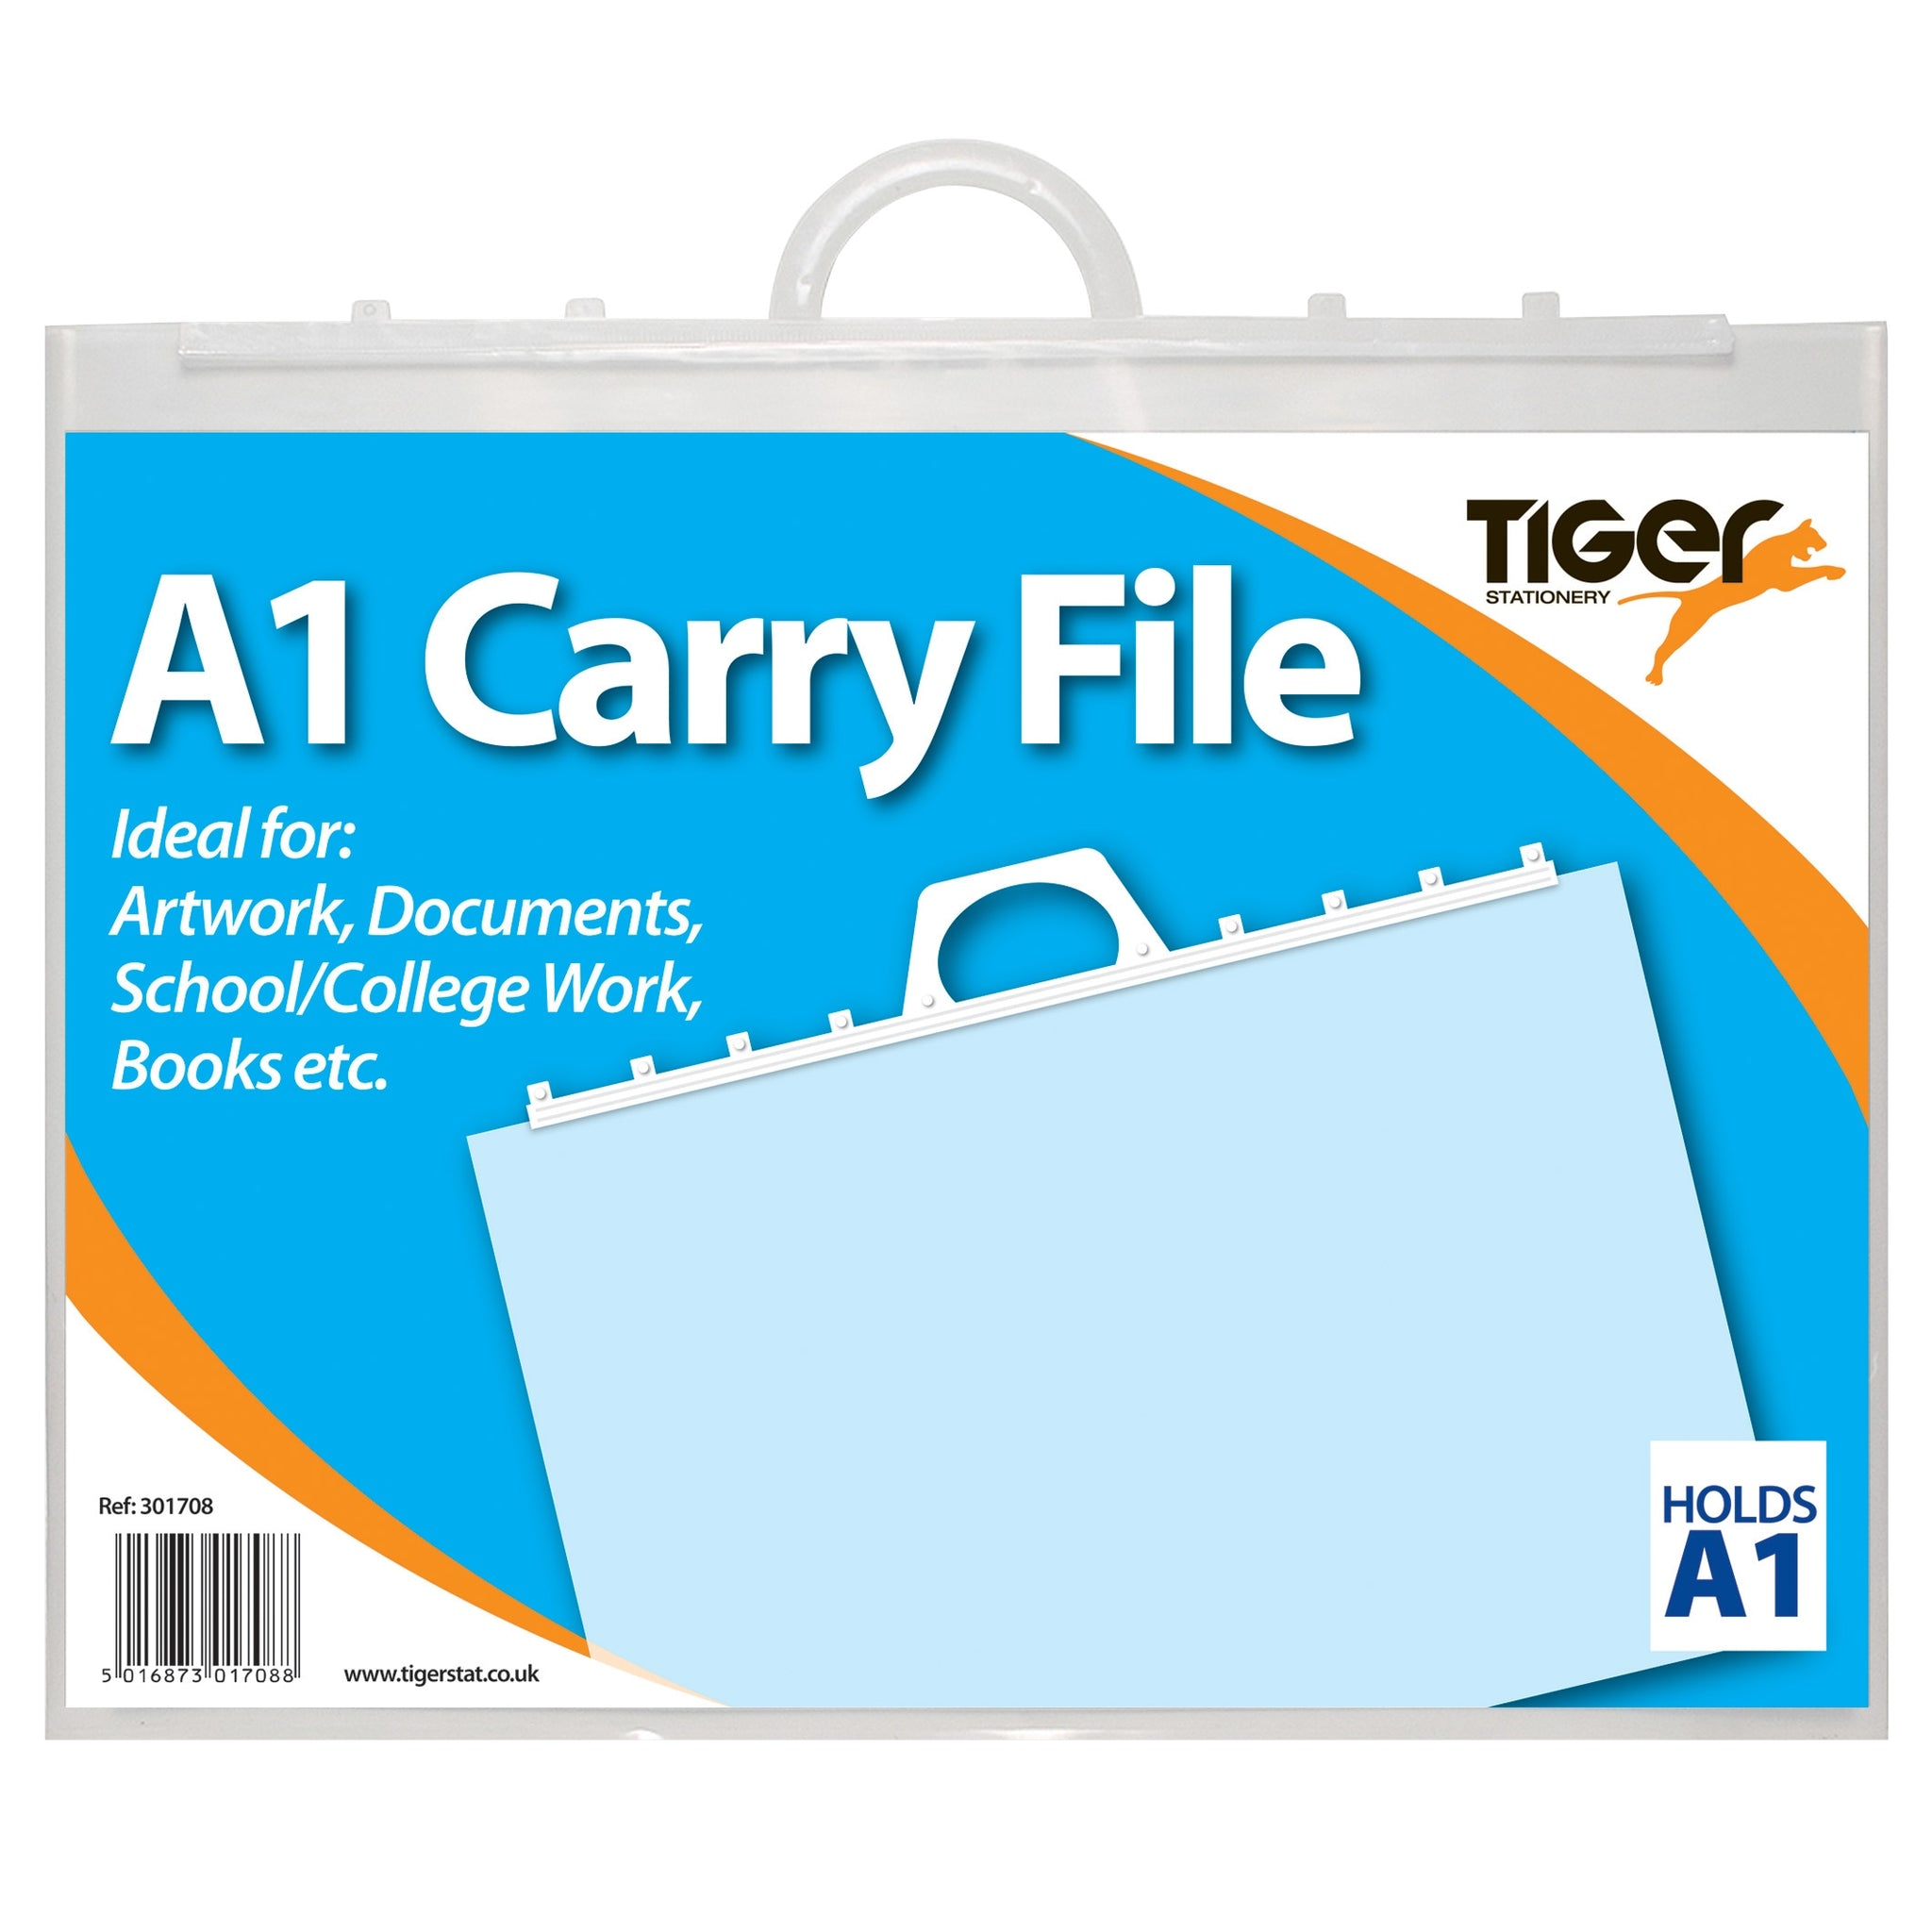 A1 Carry File